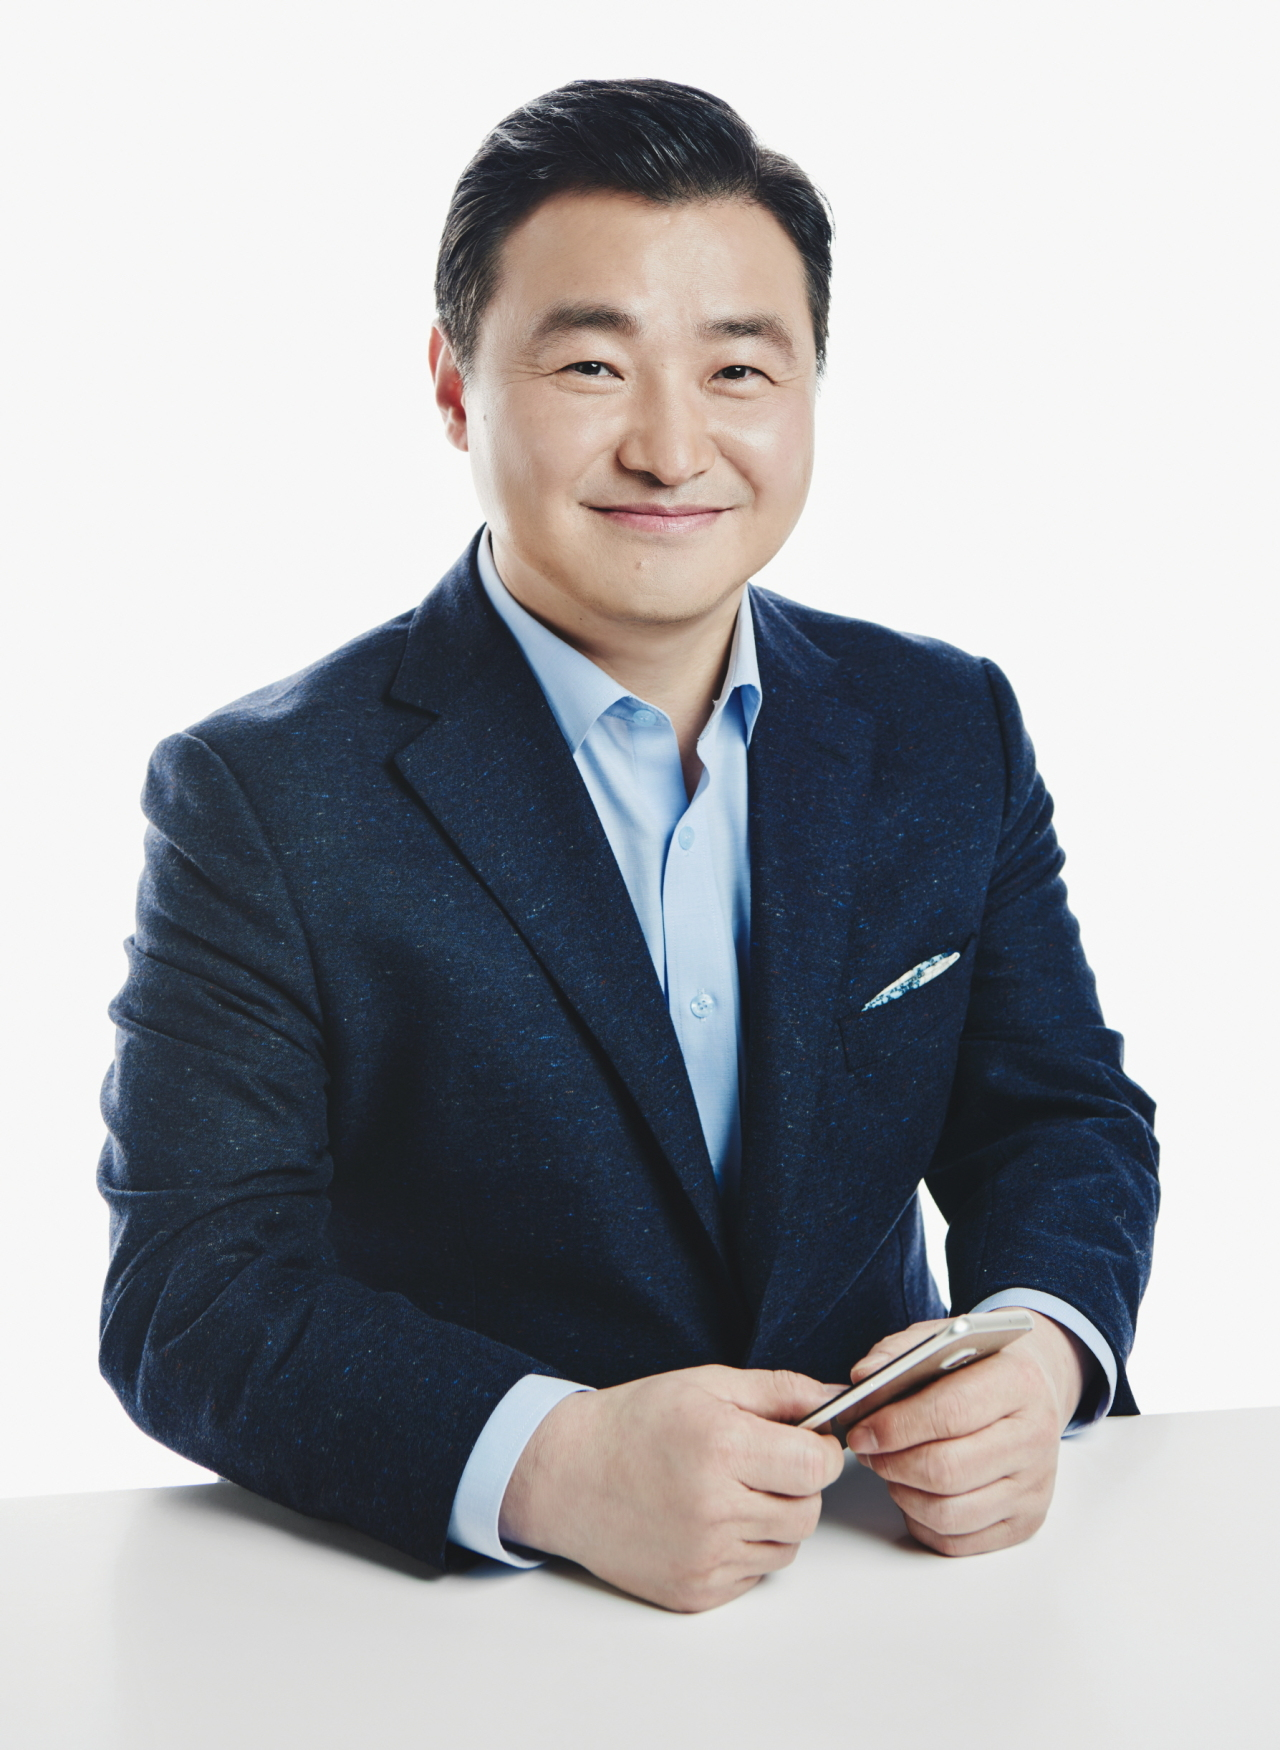 Samsung taps new smartphone biz head, seeks stability - The Korea Herald